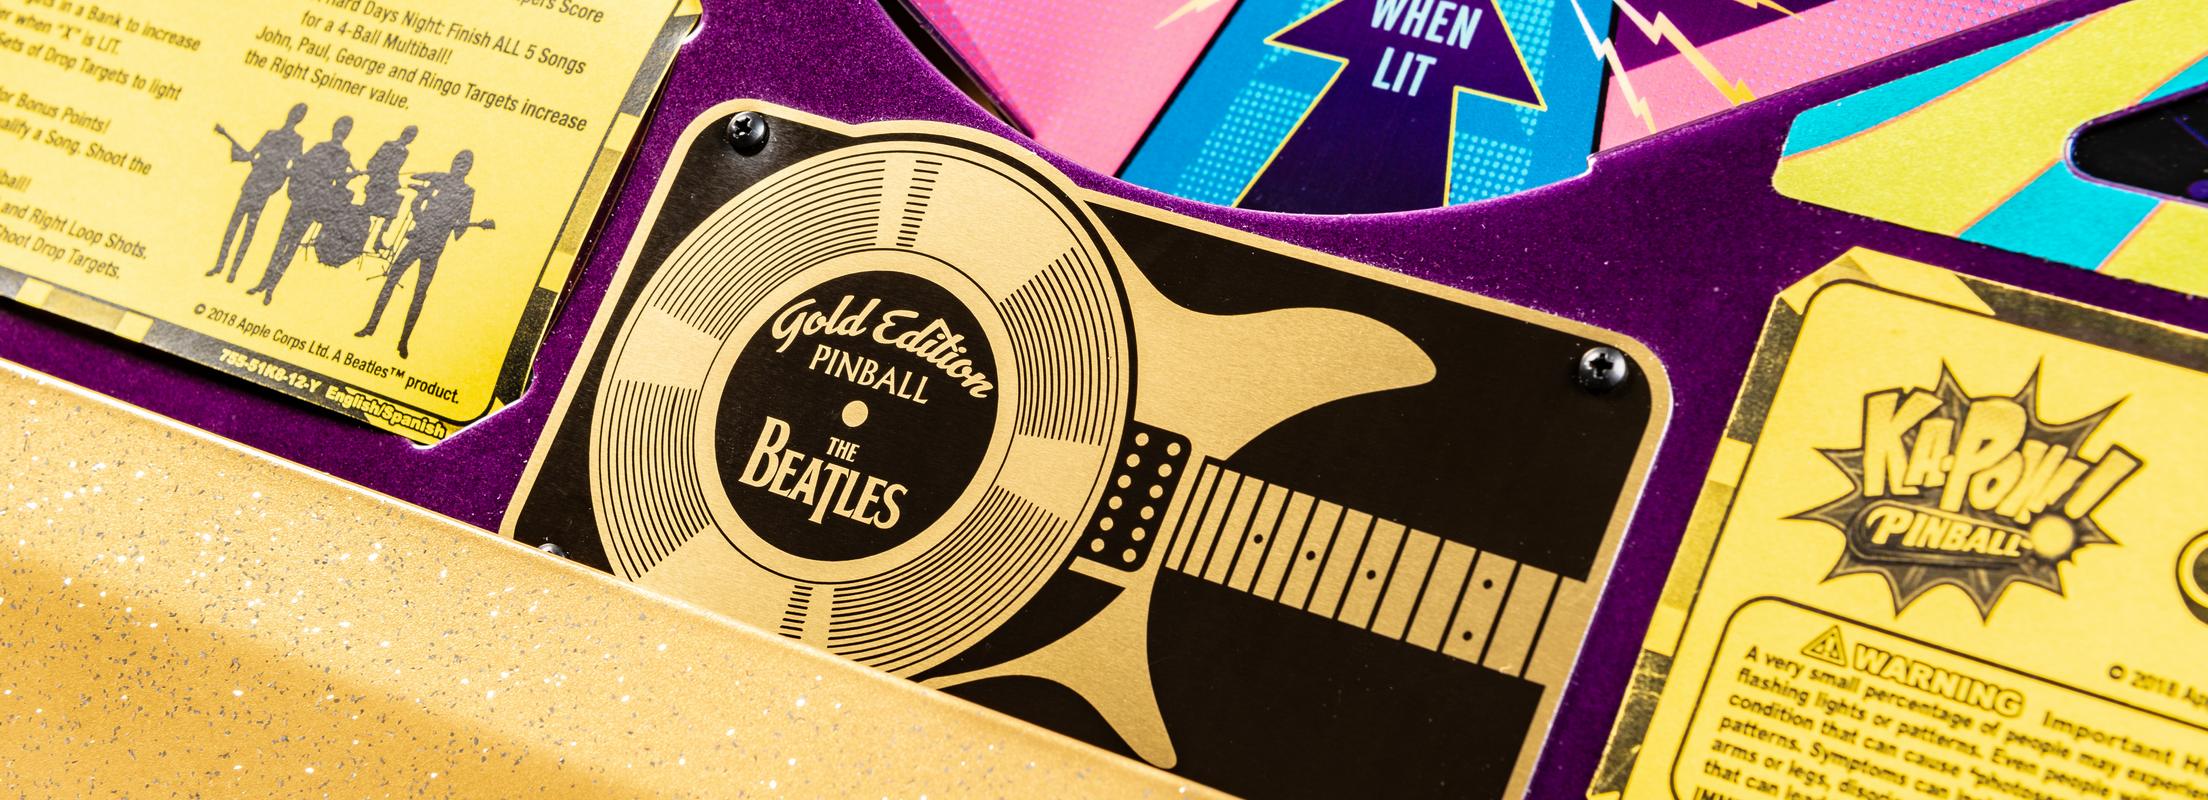 The Beatles and Stern Pinball Announce the First and Only Beatles Pinball Machine Ever Made!